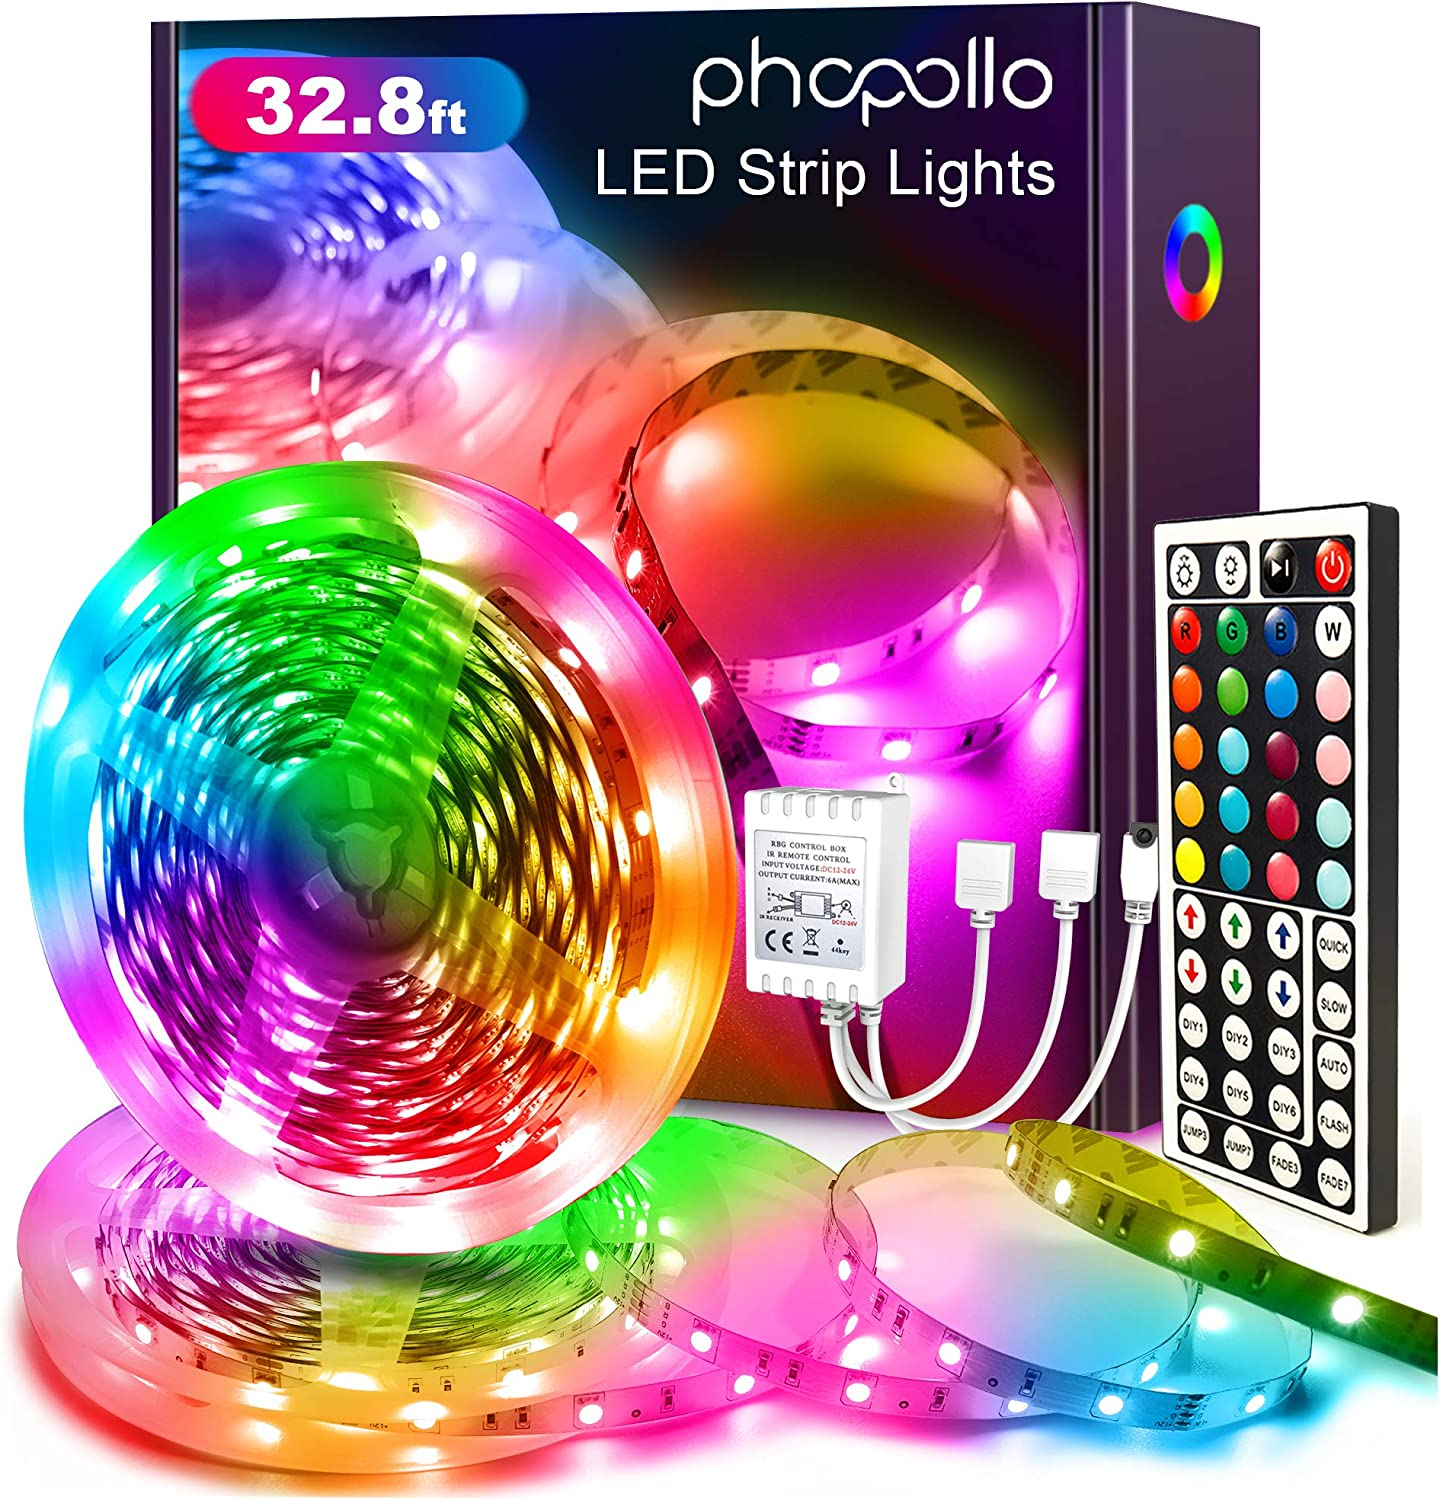 RuleaxA APEXEL APL-FL02 bomshot Multi-Functional Intelligent RGB LED Video Light Lamp Panel Support 7 Light Colors 3200K-5200K Dimmable Fill-in Light with 1//4 Inch Screw Hole AI Mode for Selfie